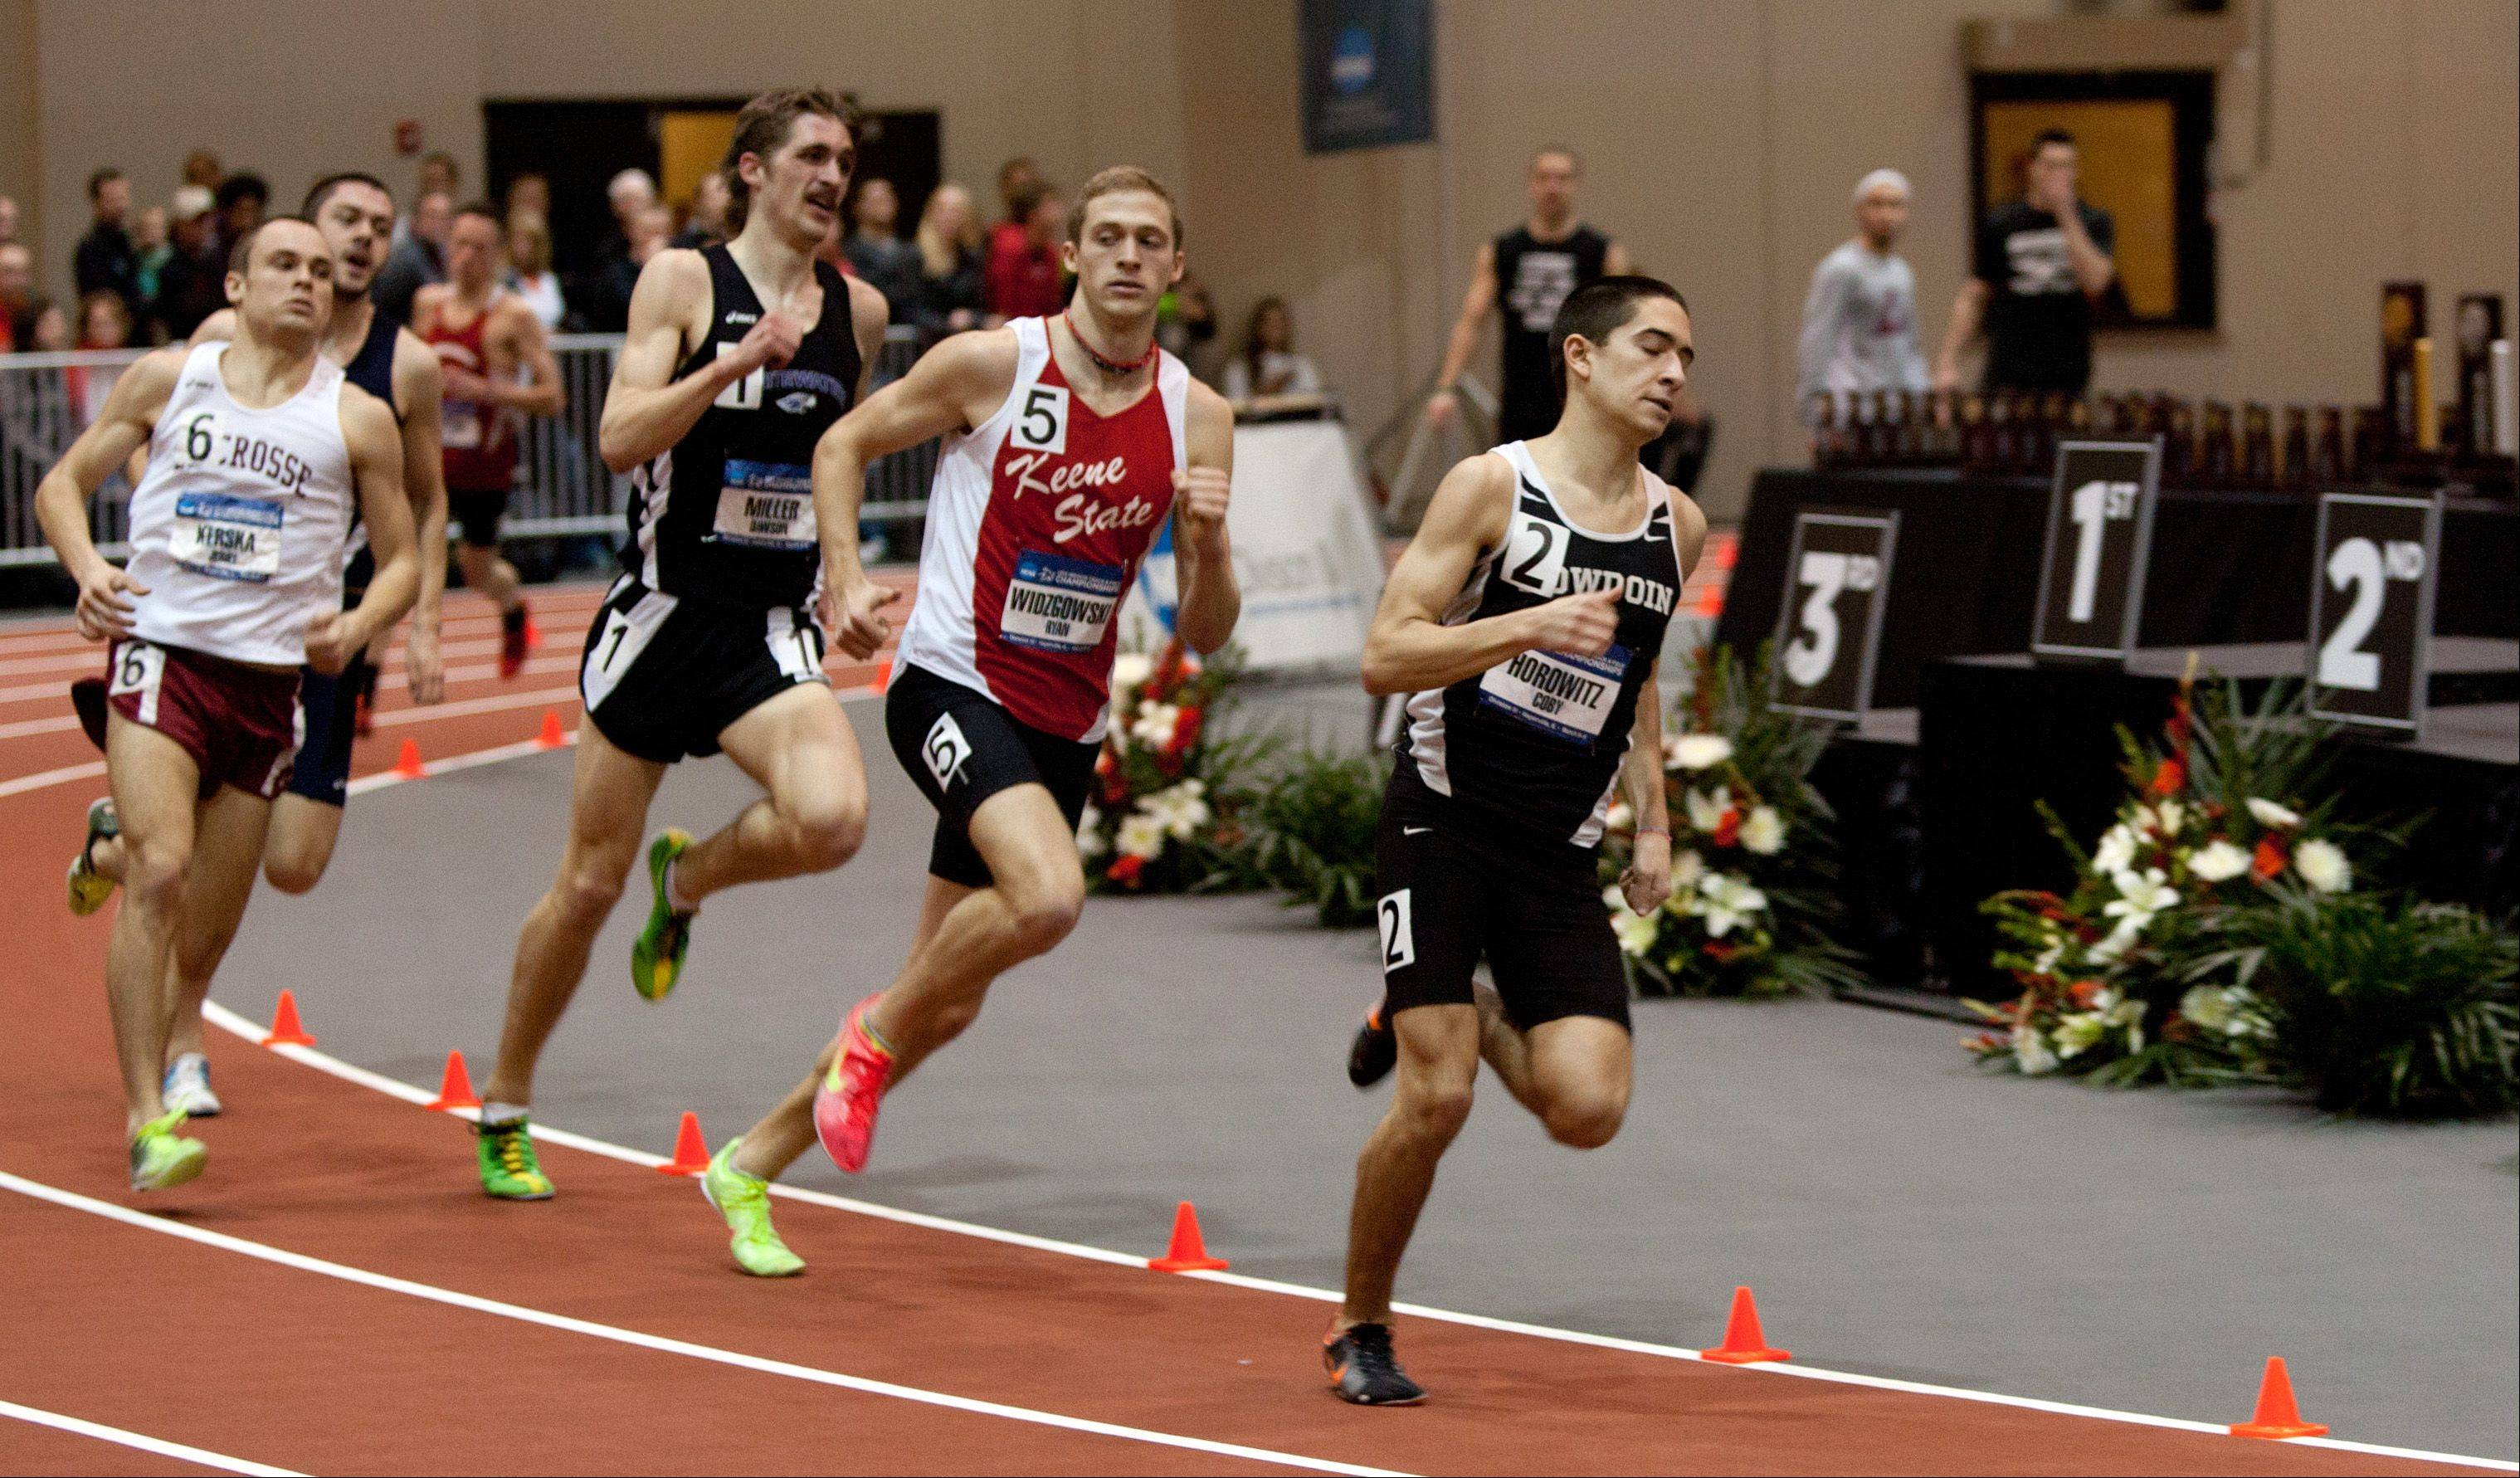 Runners head toward the finish in the preliminary heat of the mile run March 8 in Naperville during the NCAA Division III Indoor Track and Field Championships at North Central College.